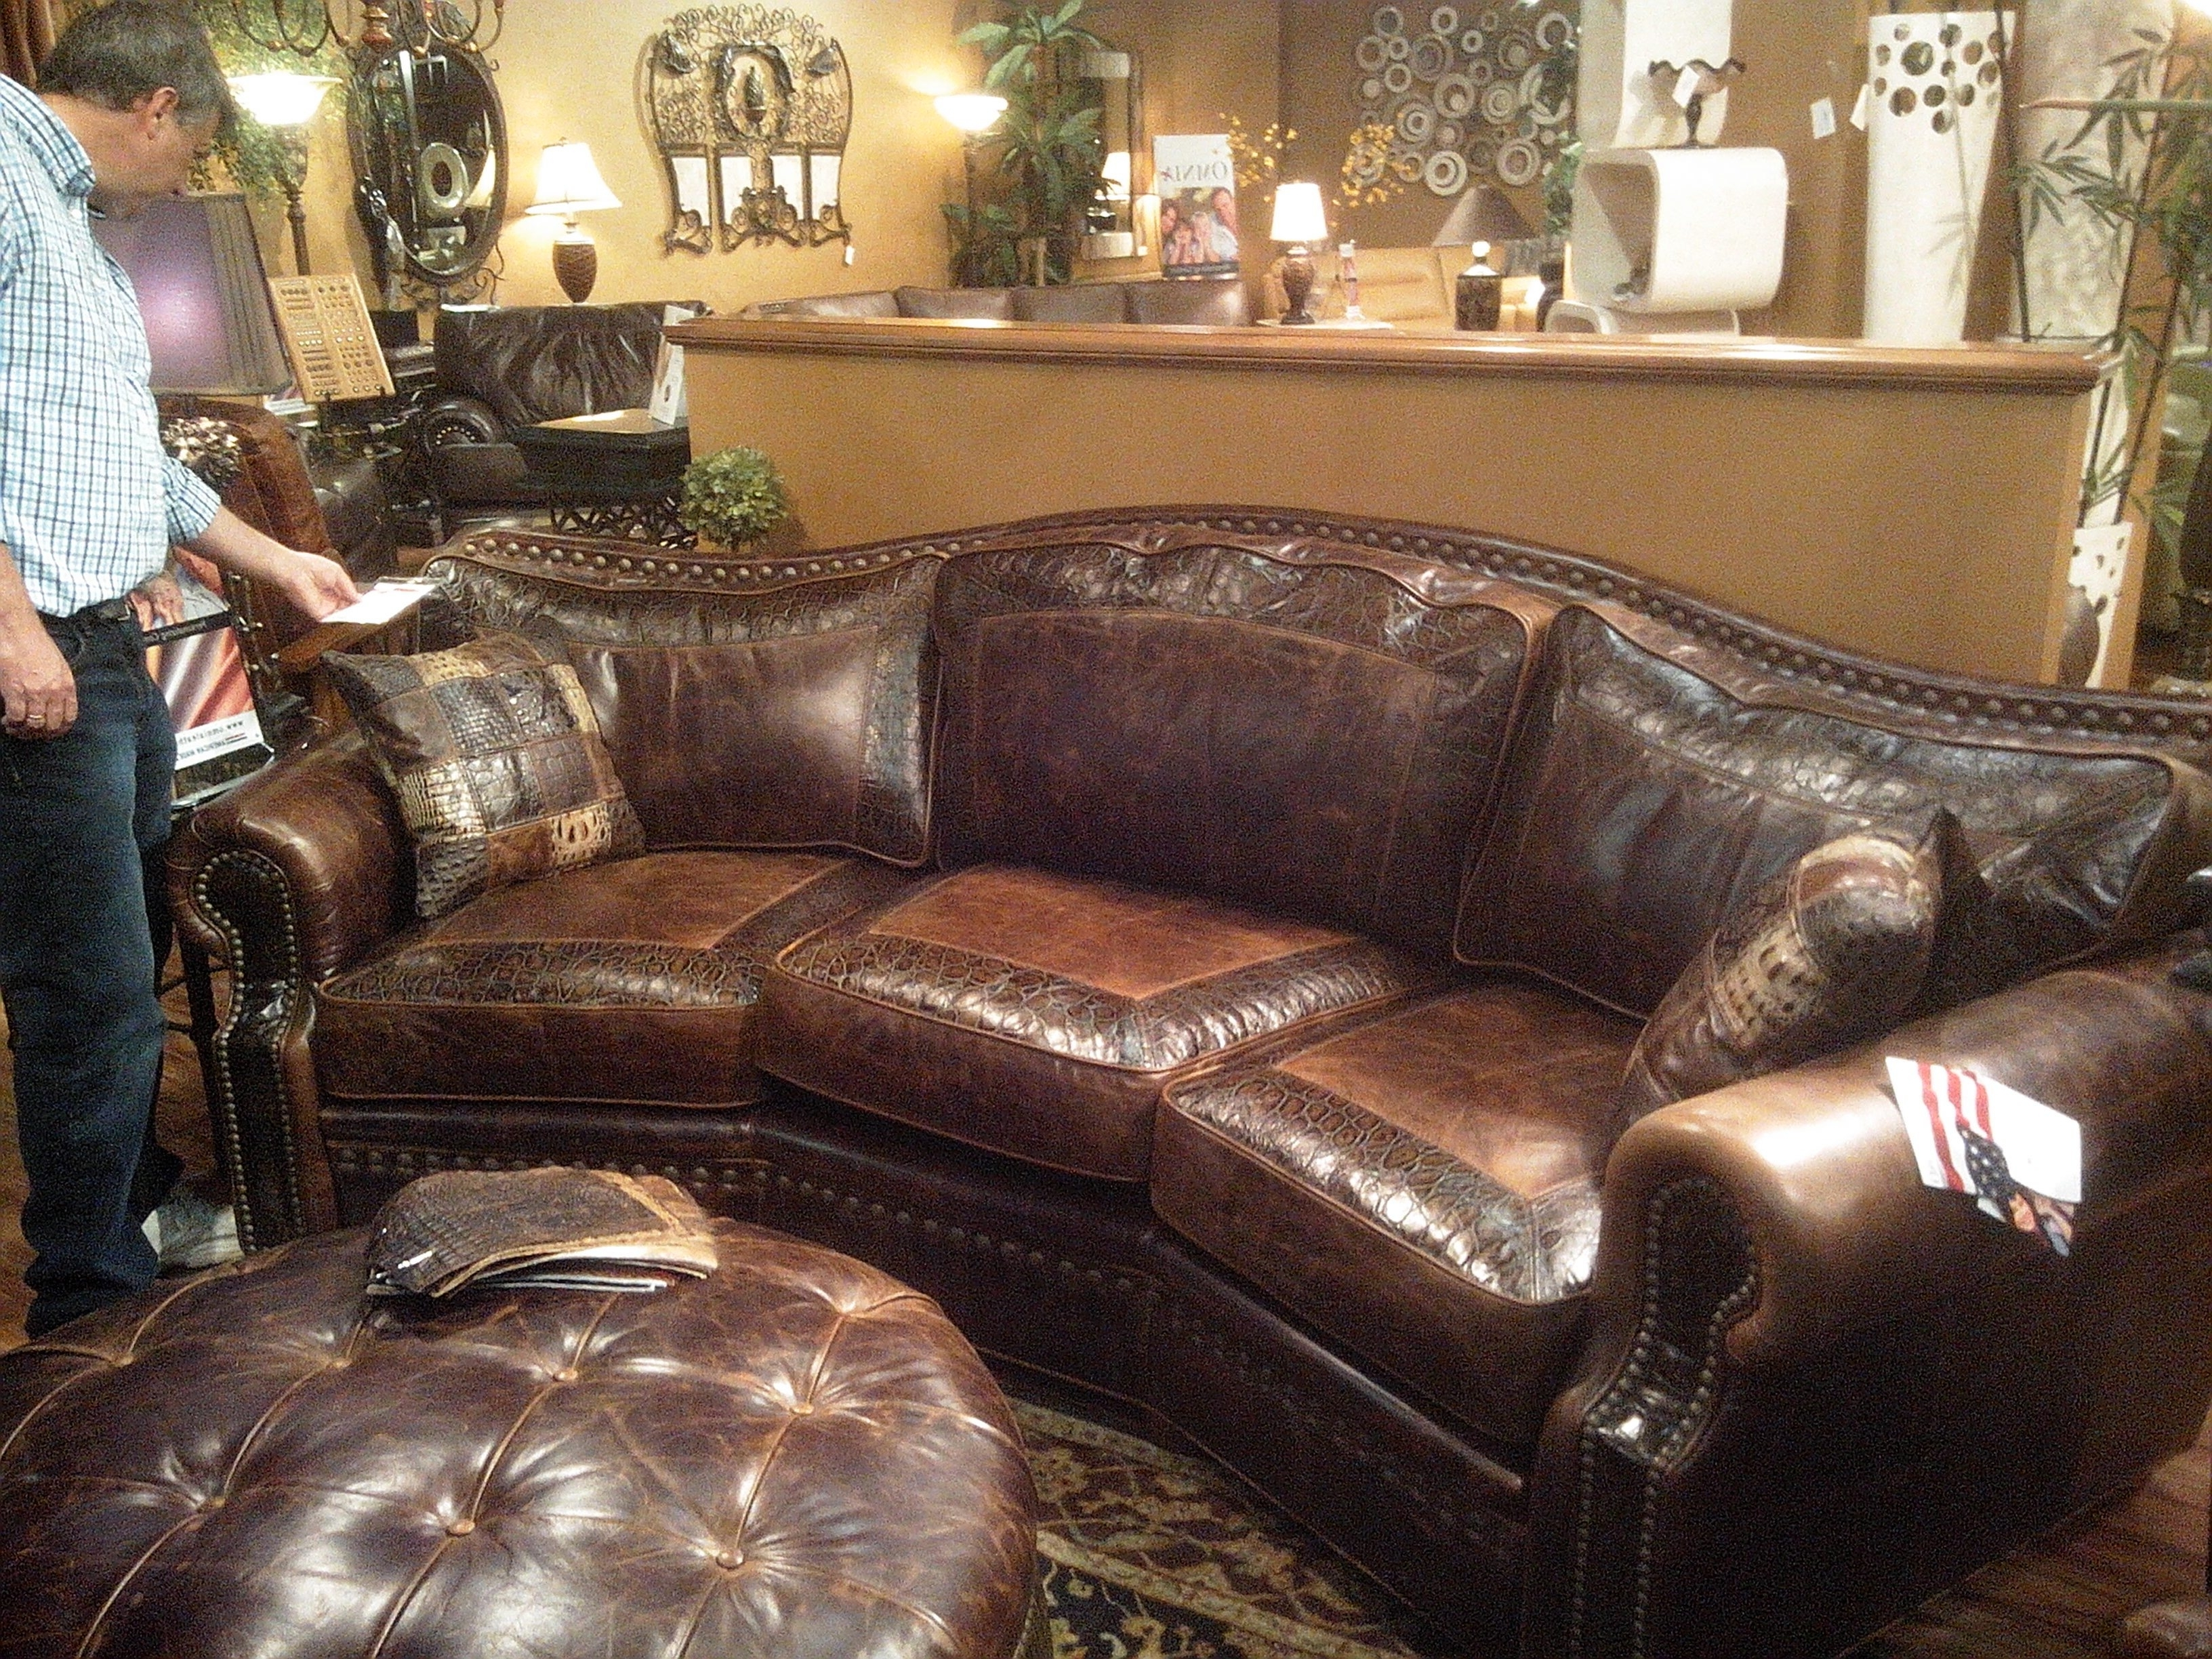 Omnia Leather Tucson Seat Conversation Couch Saw It At Recliners In Best And Newest Tucson Sectional Sofas (View 10 of 20)